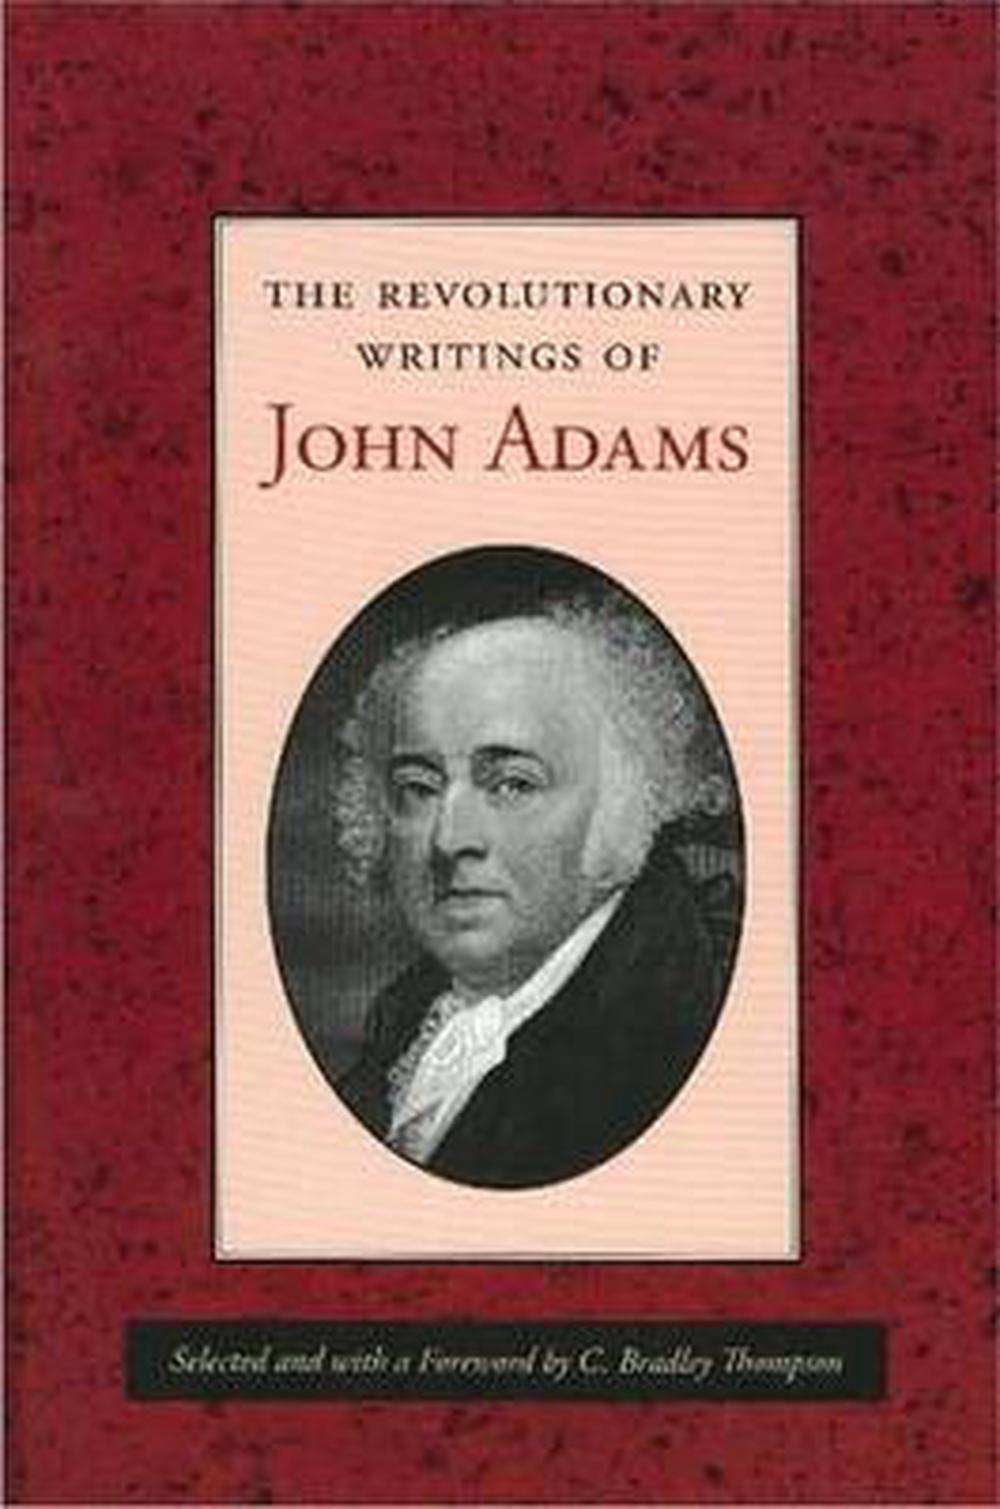 john adams and the coming of the revolution thesis John adams, the works of john adams, second president of the united states, charles francis adams, editor (boston: little, brown and company, 1854), vol ix, p 229, to the officers of the first brigade of the third division of the militia of massachusetts on october 11, 1798.